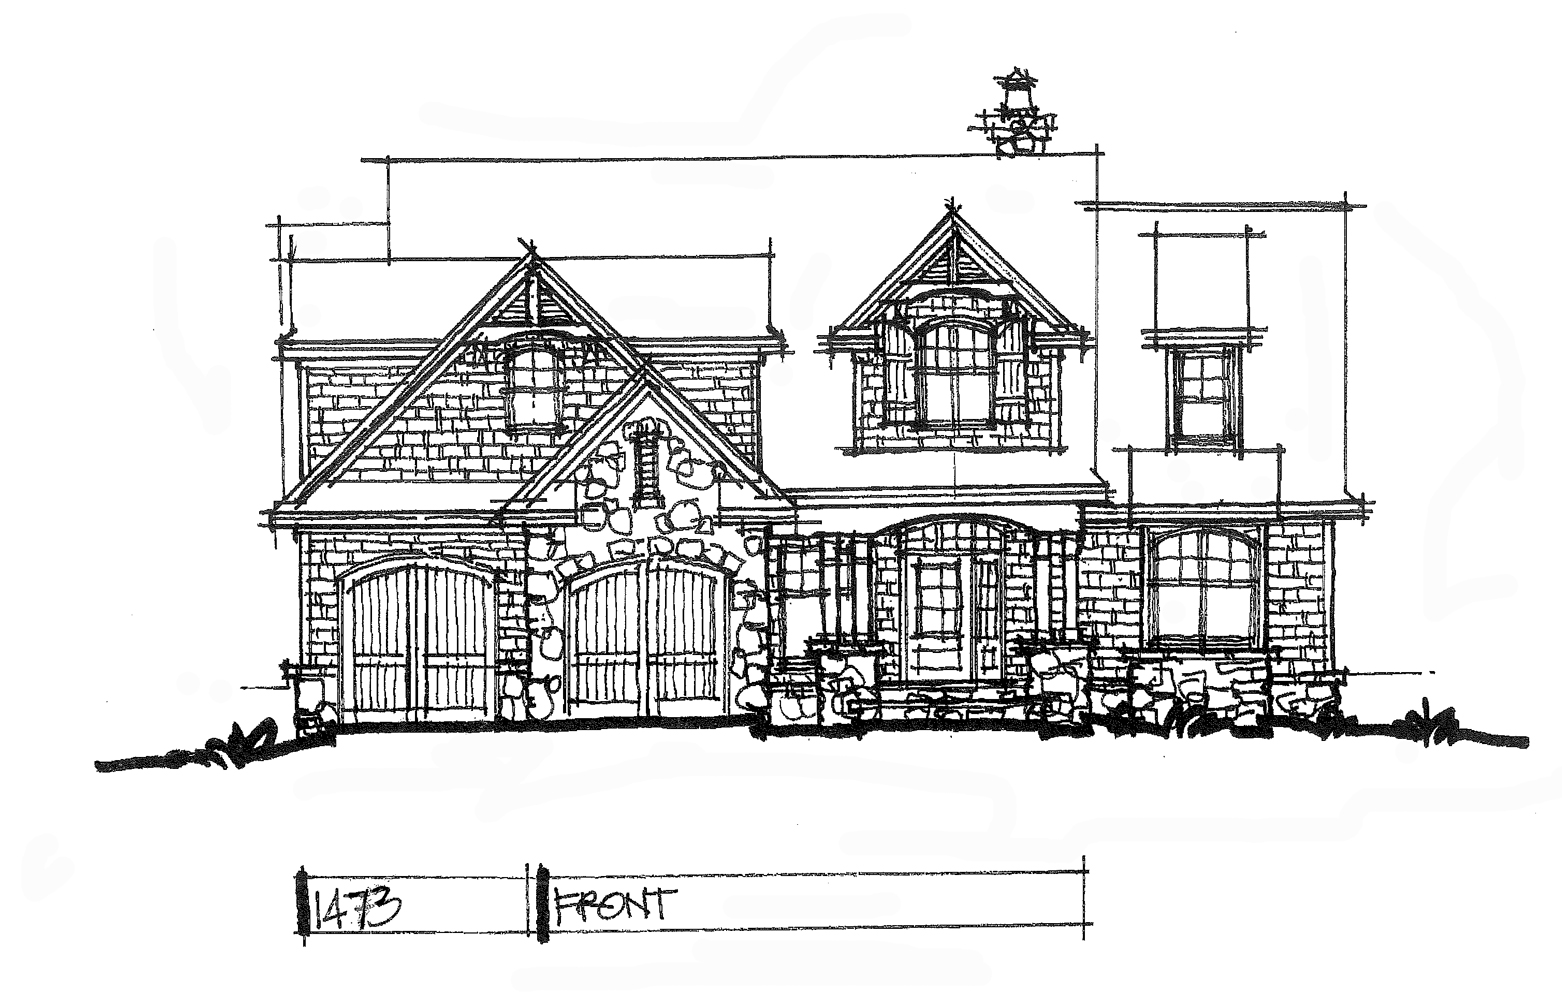 Check out the front elevation for house plan 1473.